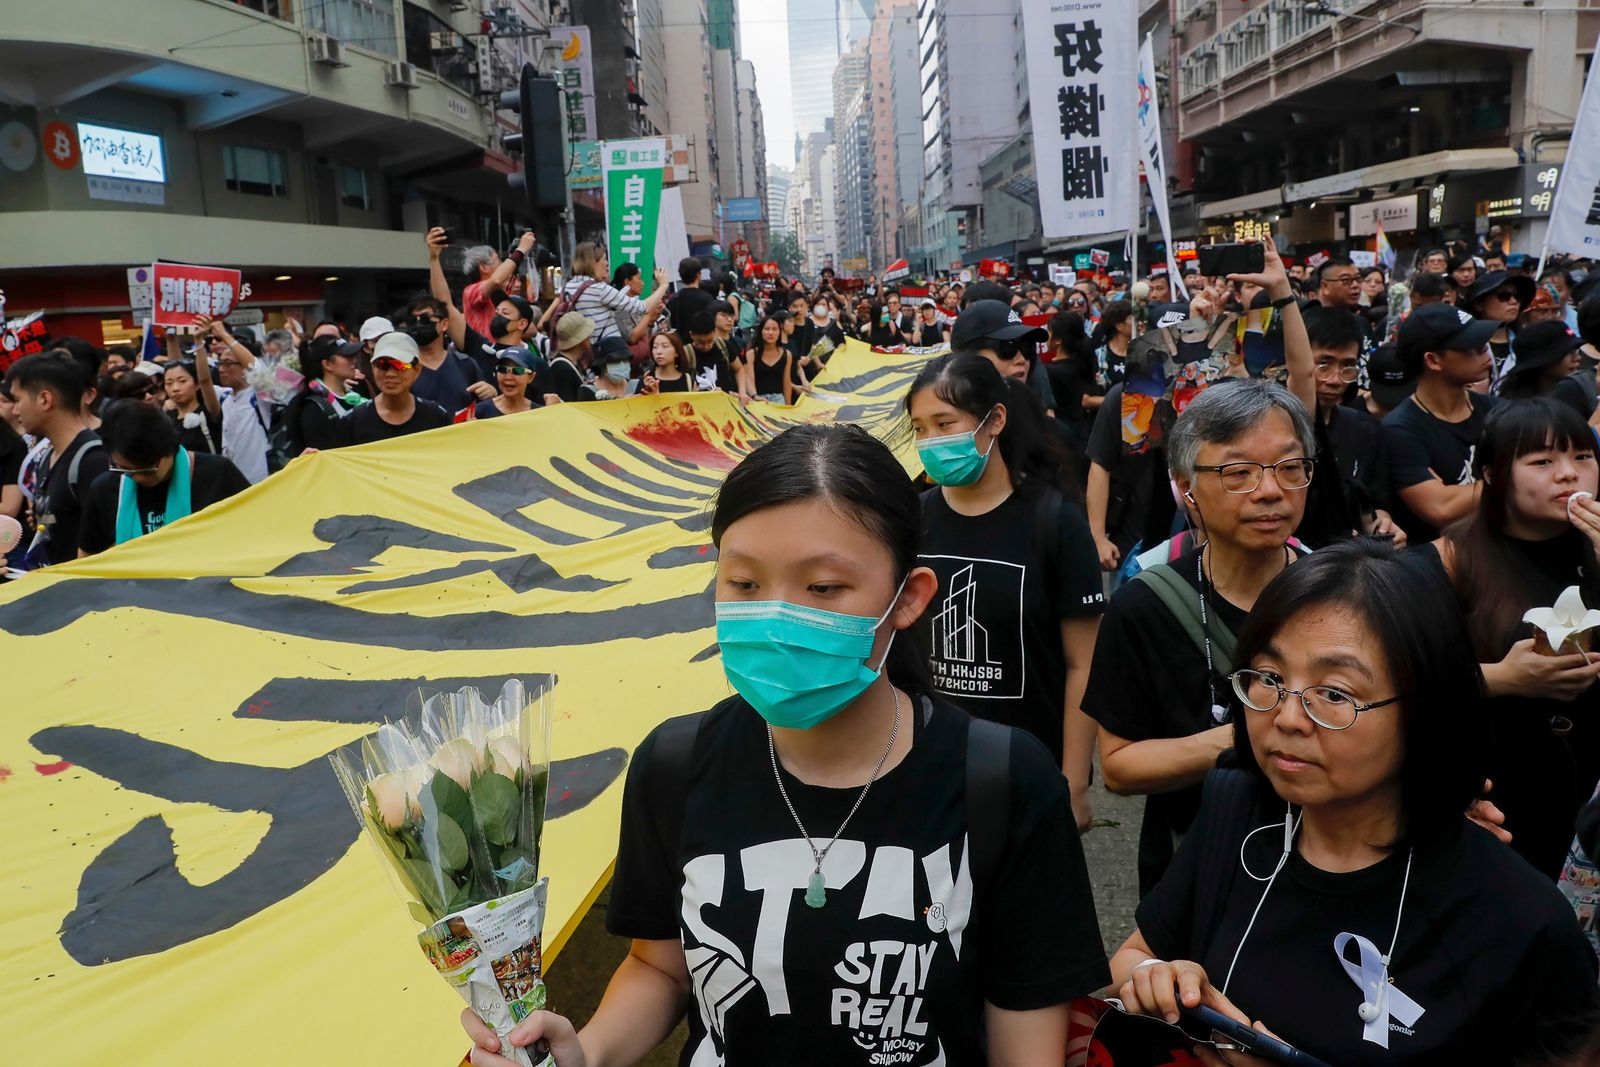 Tens of thousands of protesters carry posters and banners march through the streets as they continue to protest an extradition bill, Sunday, June 16, 2019, in Hong Kong (AP Photo/Kin Cheung)